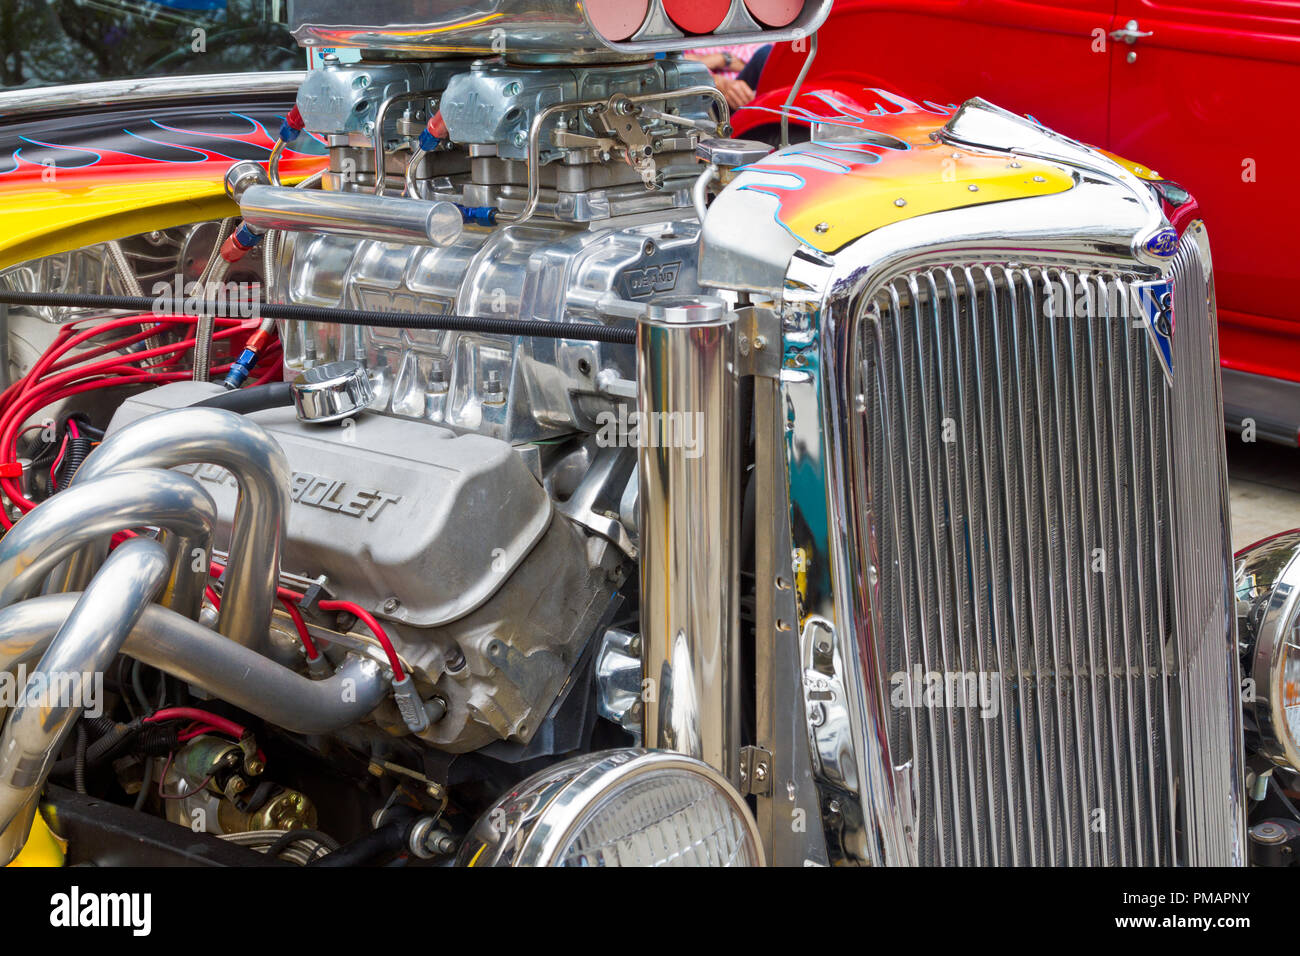 1934 Ford Stock Photos & 1934 Ford Stock Images - Alamy